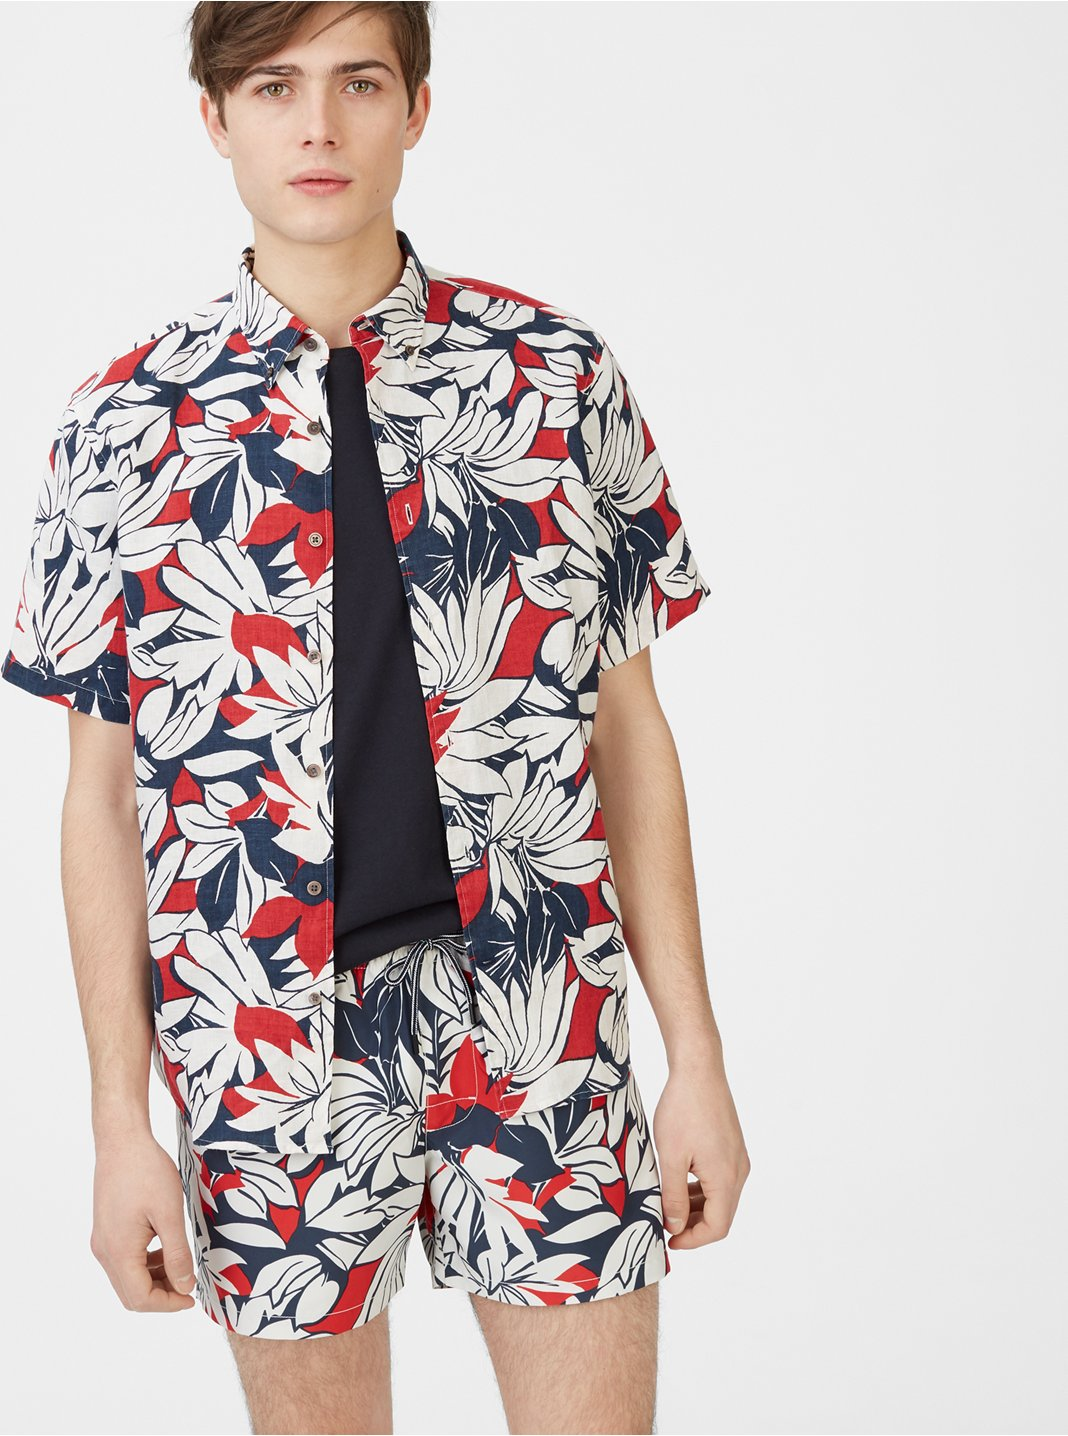 Slim Tropic Short-Sleeve Shirt